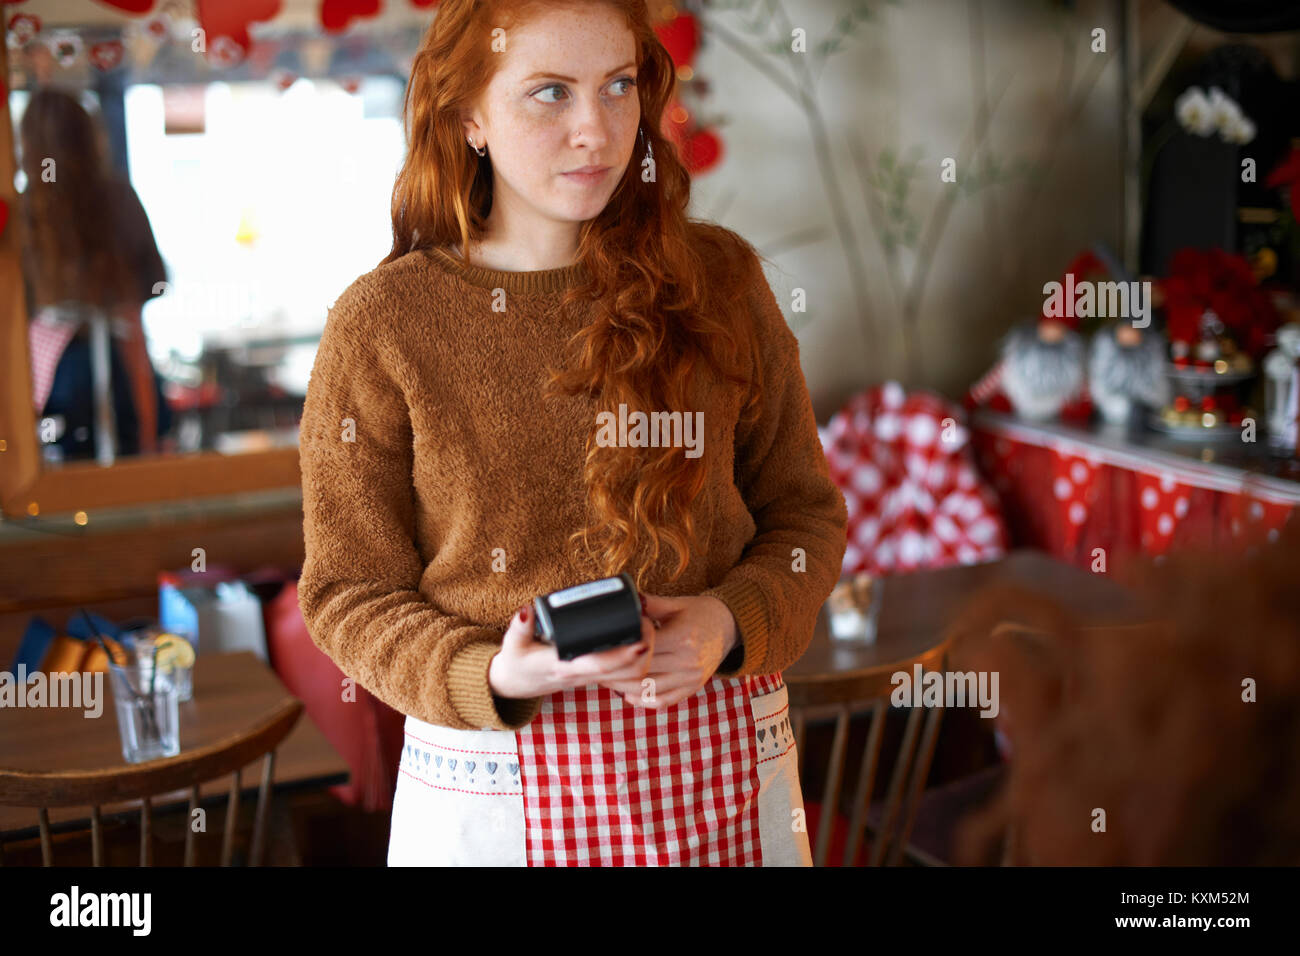 Waitress in cafe holding credit card reader Stock Photo